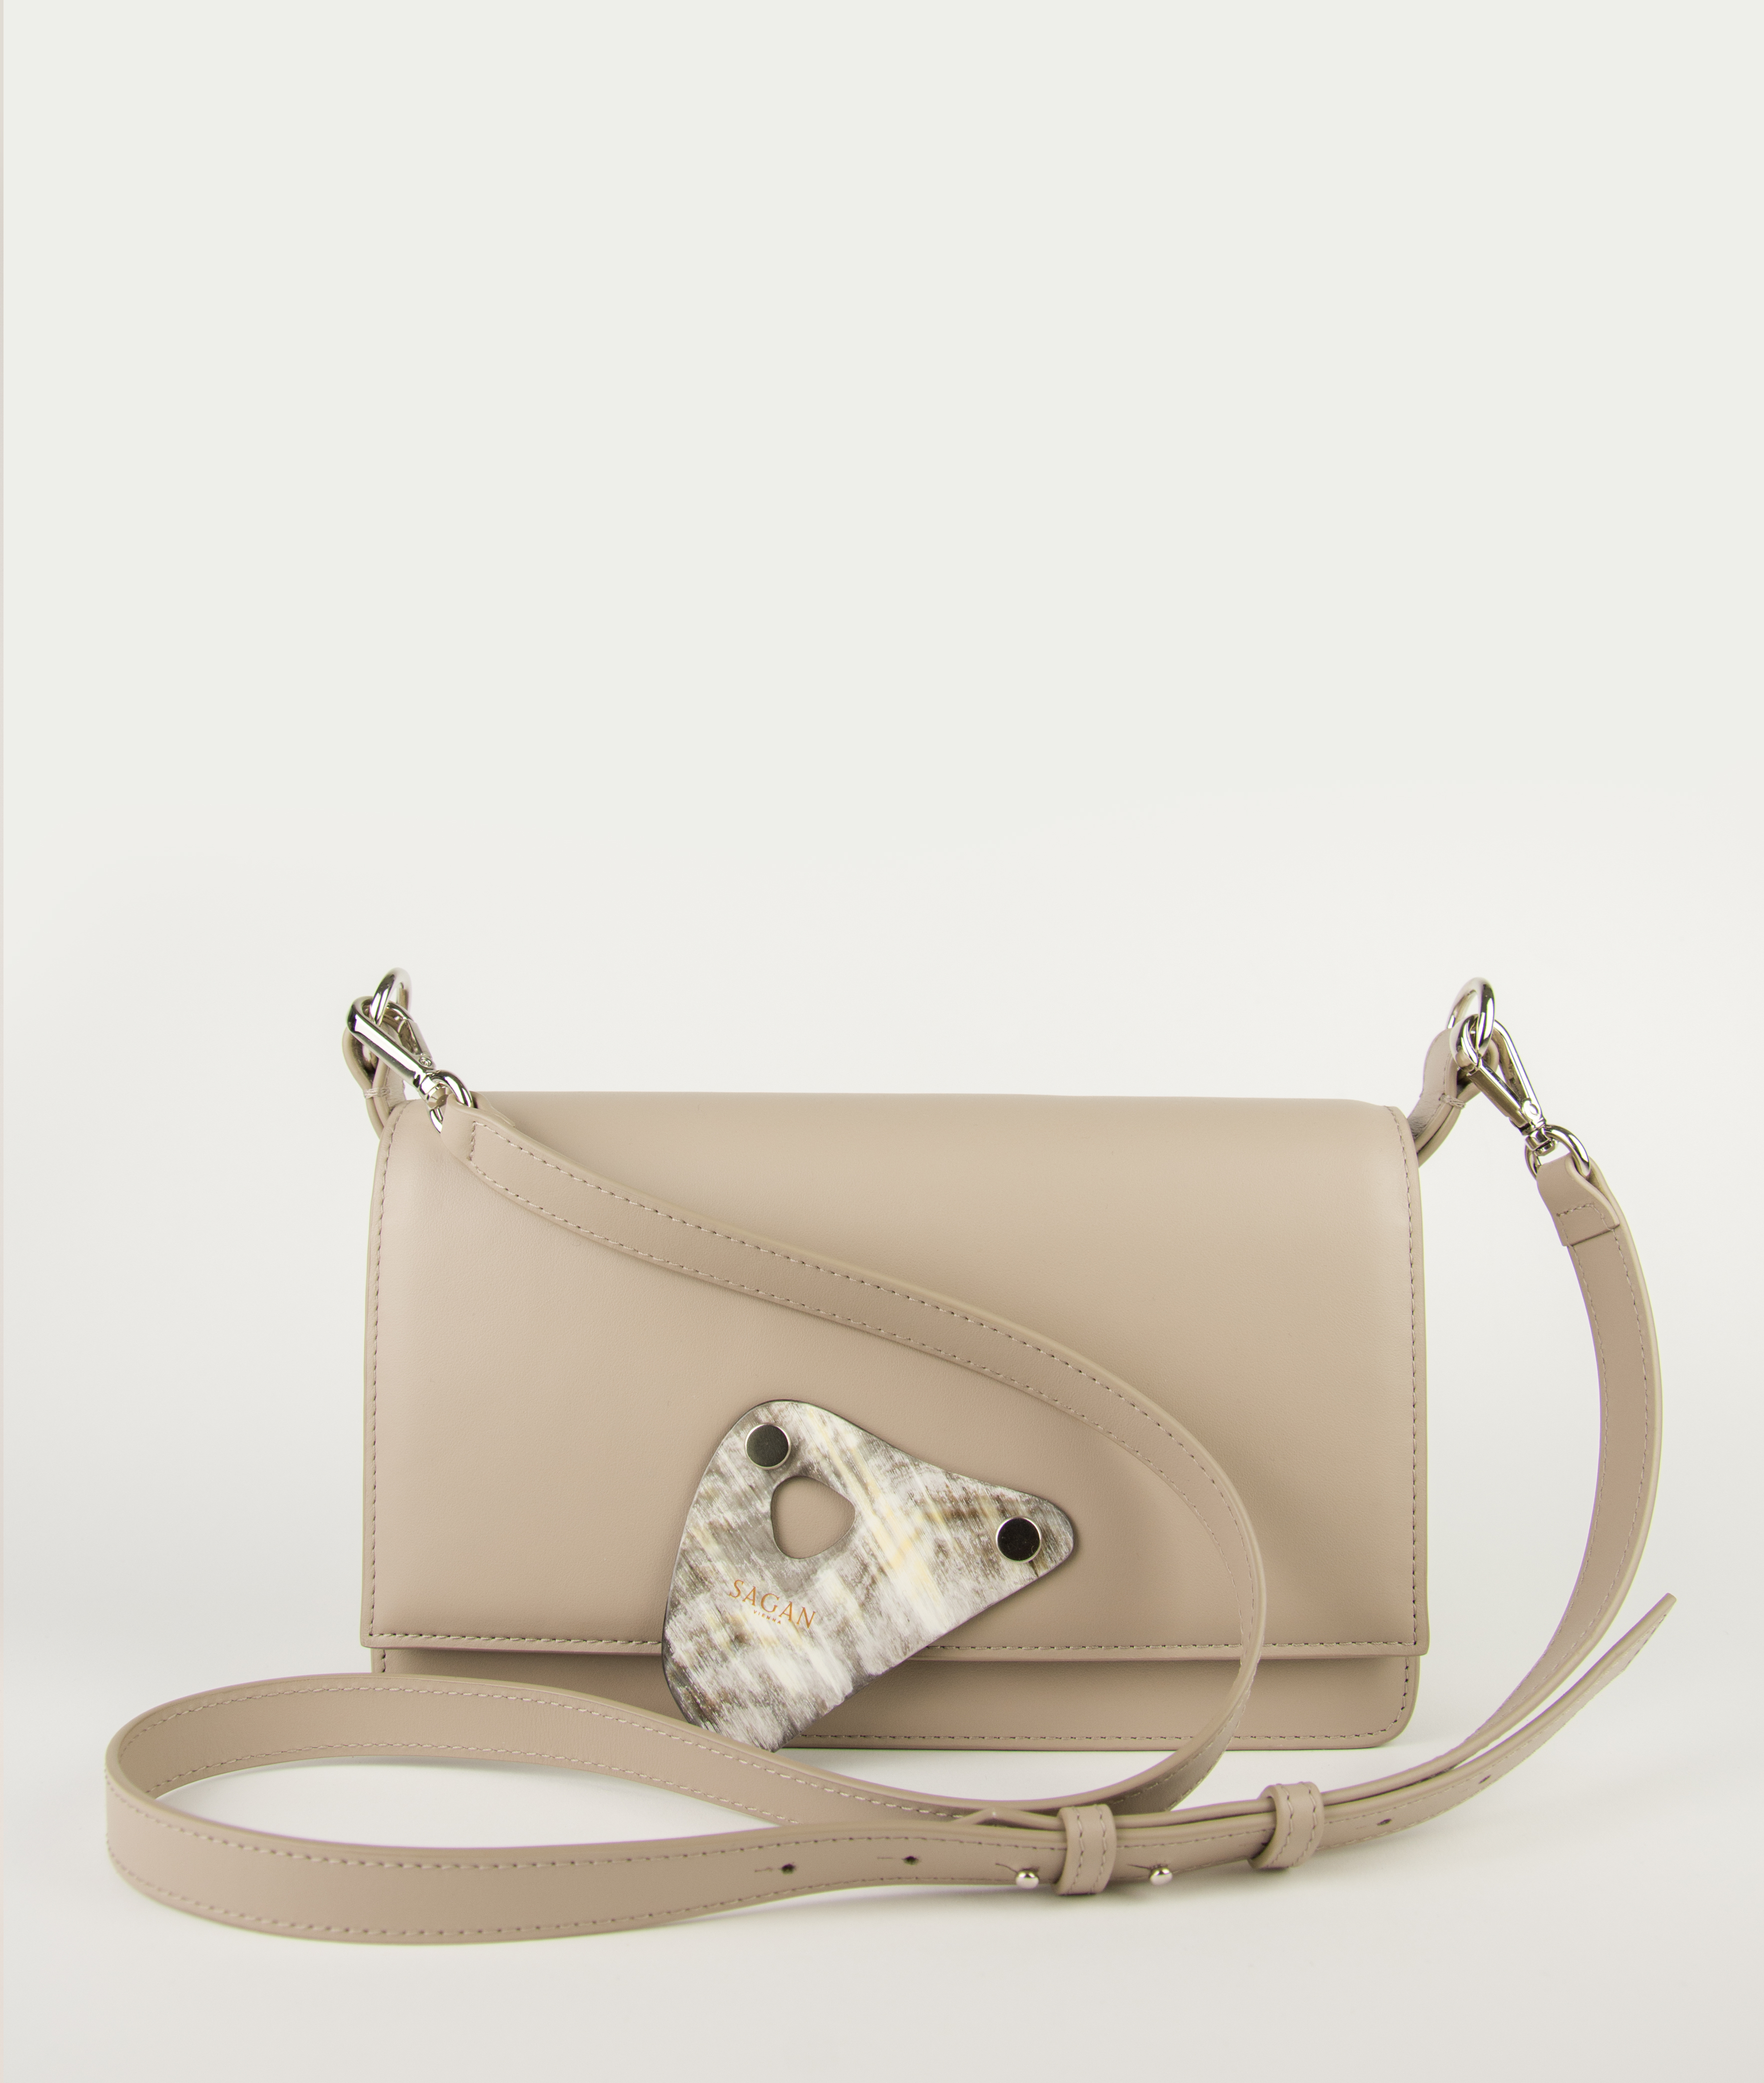 CROSSBODY M BASIC STRAP_BEIEGE TAUPE with HORN